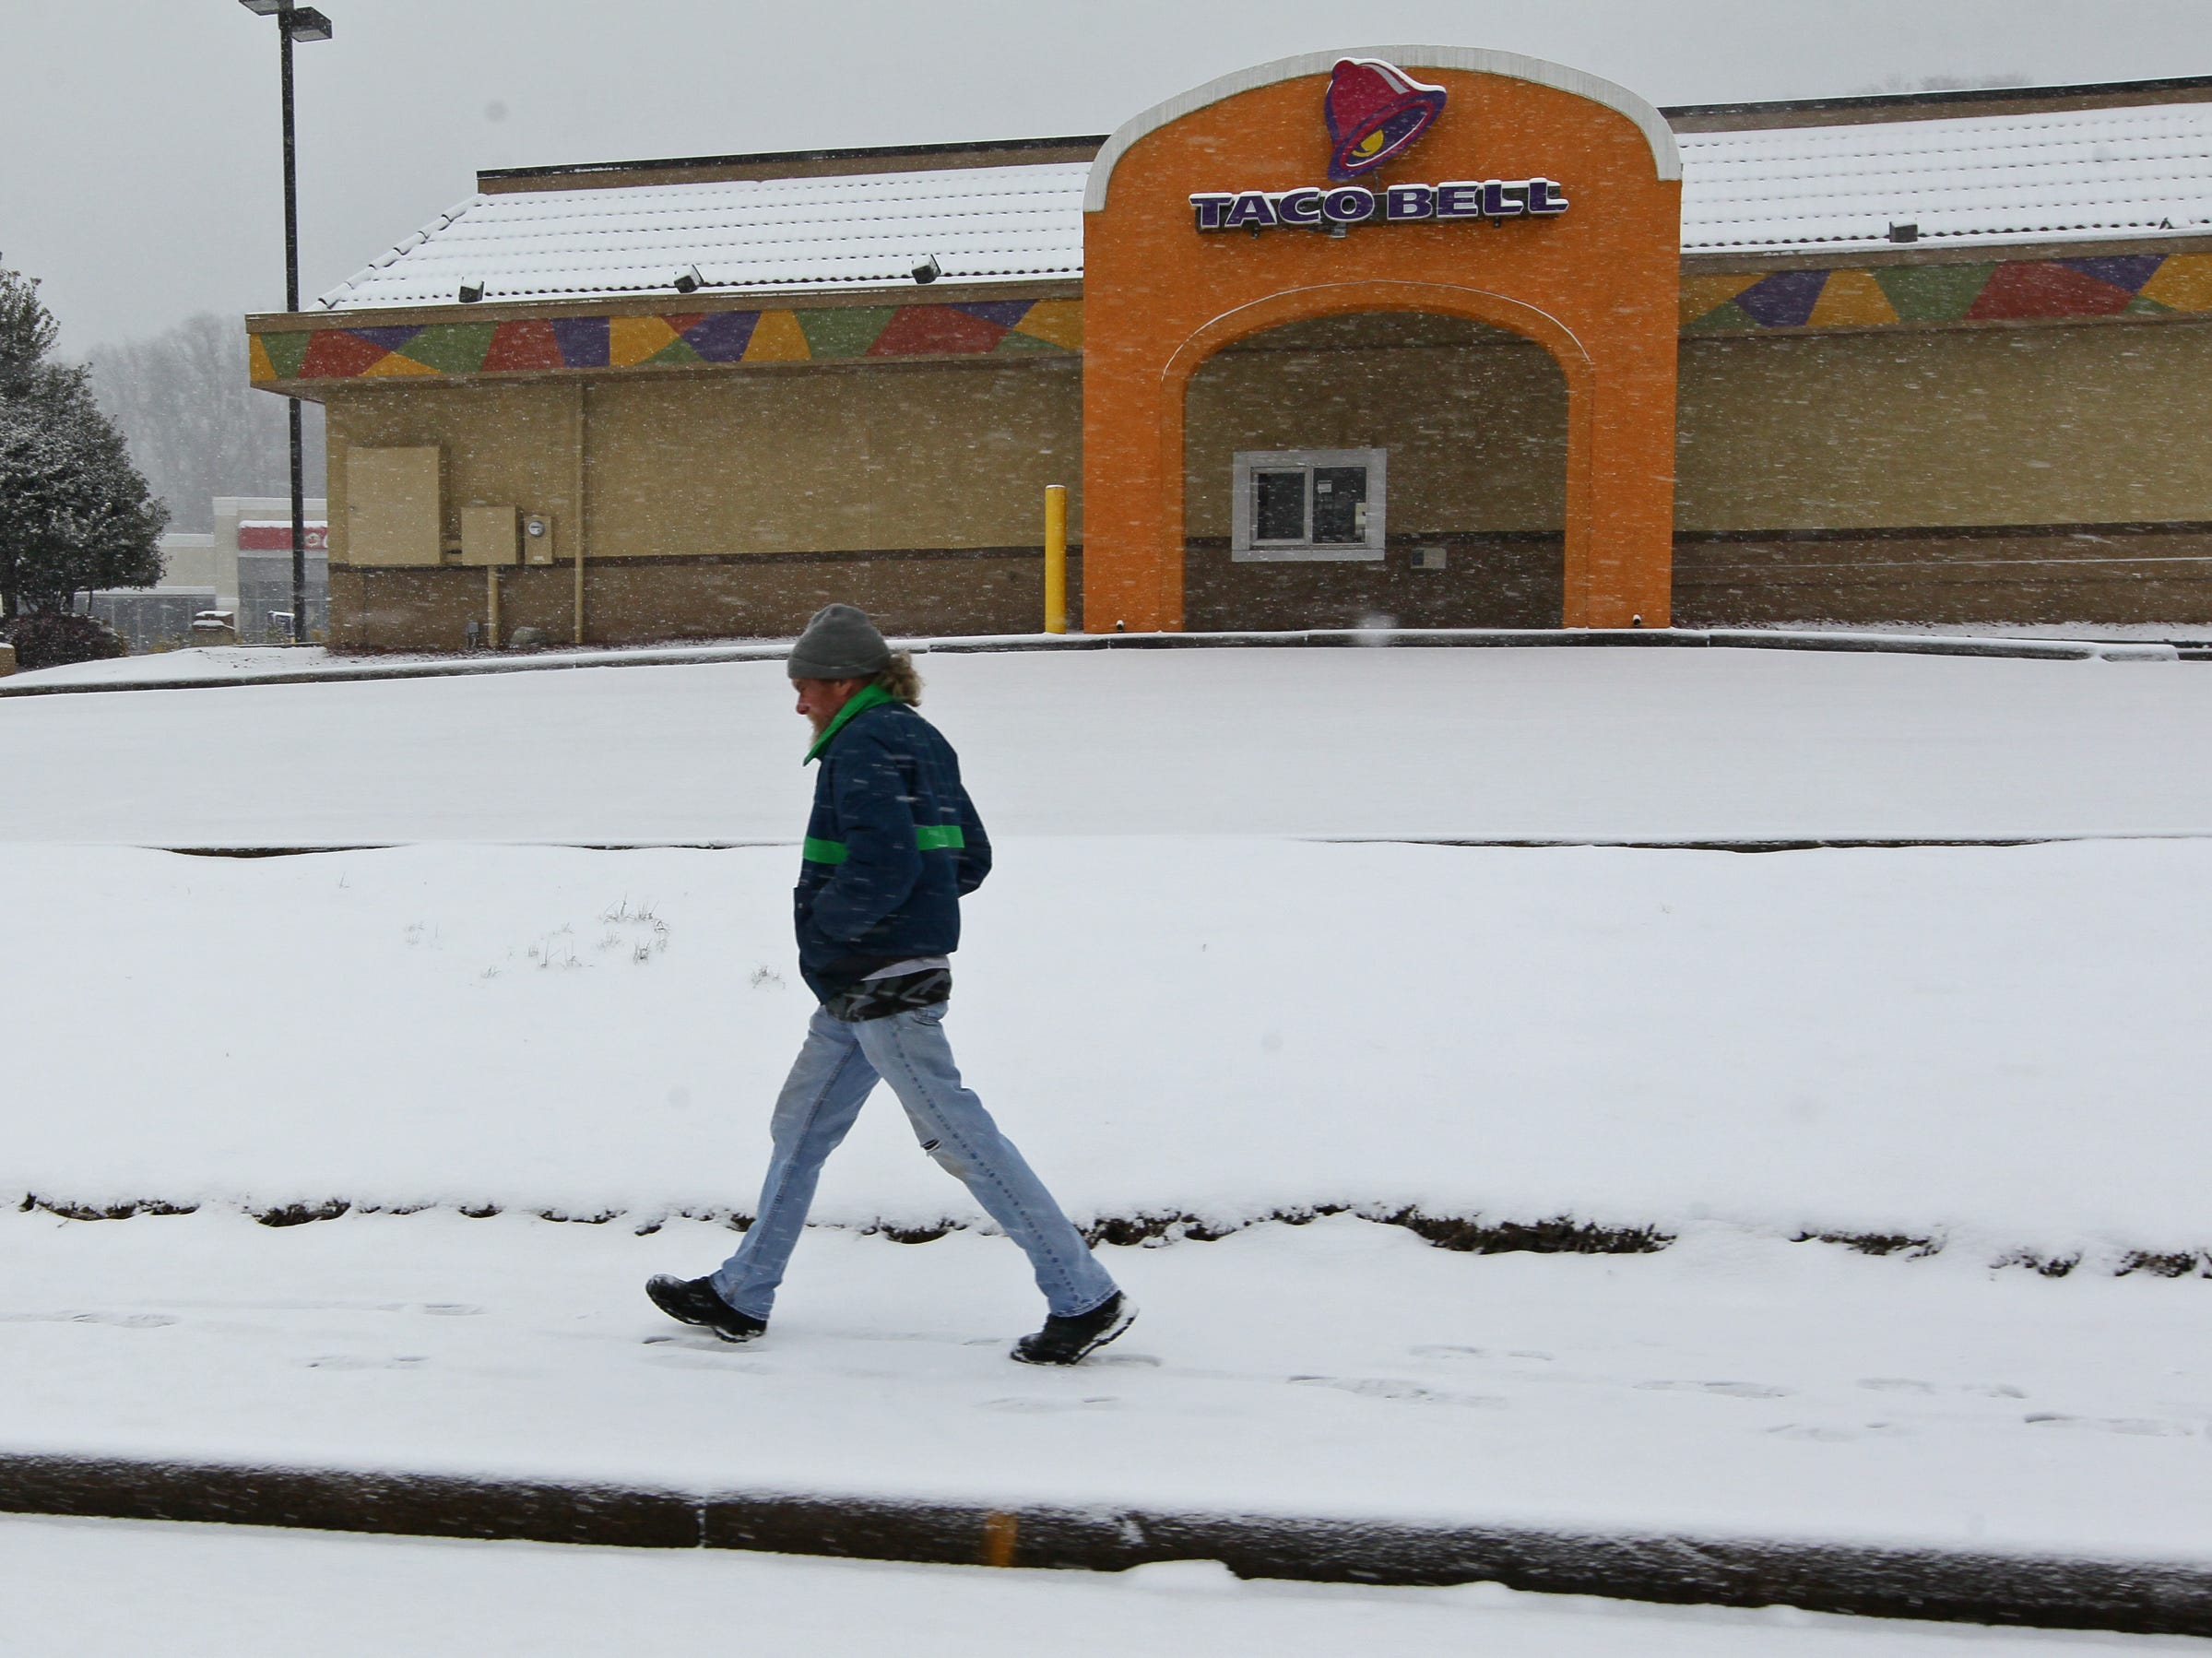 A man walks by a Taco Bell on Clemson Boulevard, one of several businesses closed due to the snow storm in Anderson during the first snow of 2014.